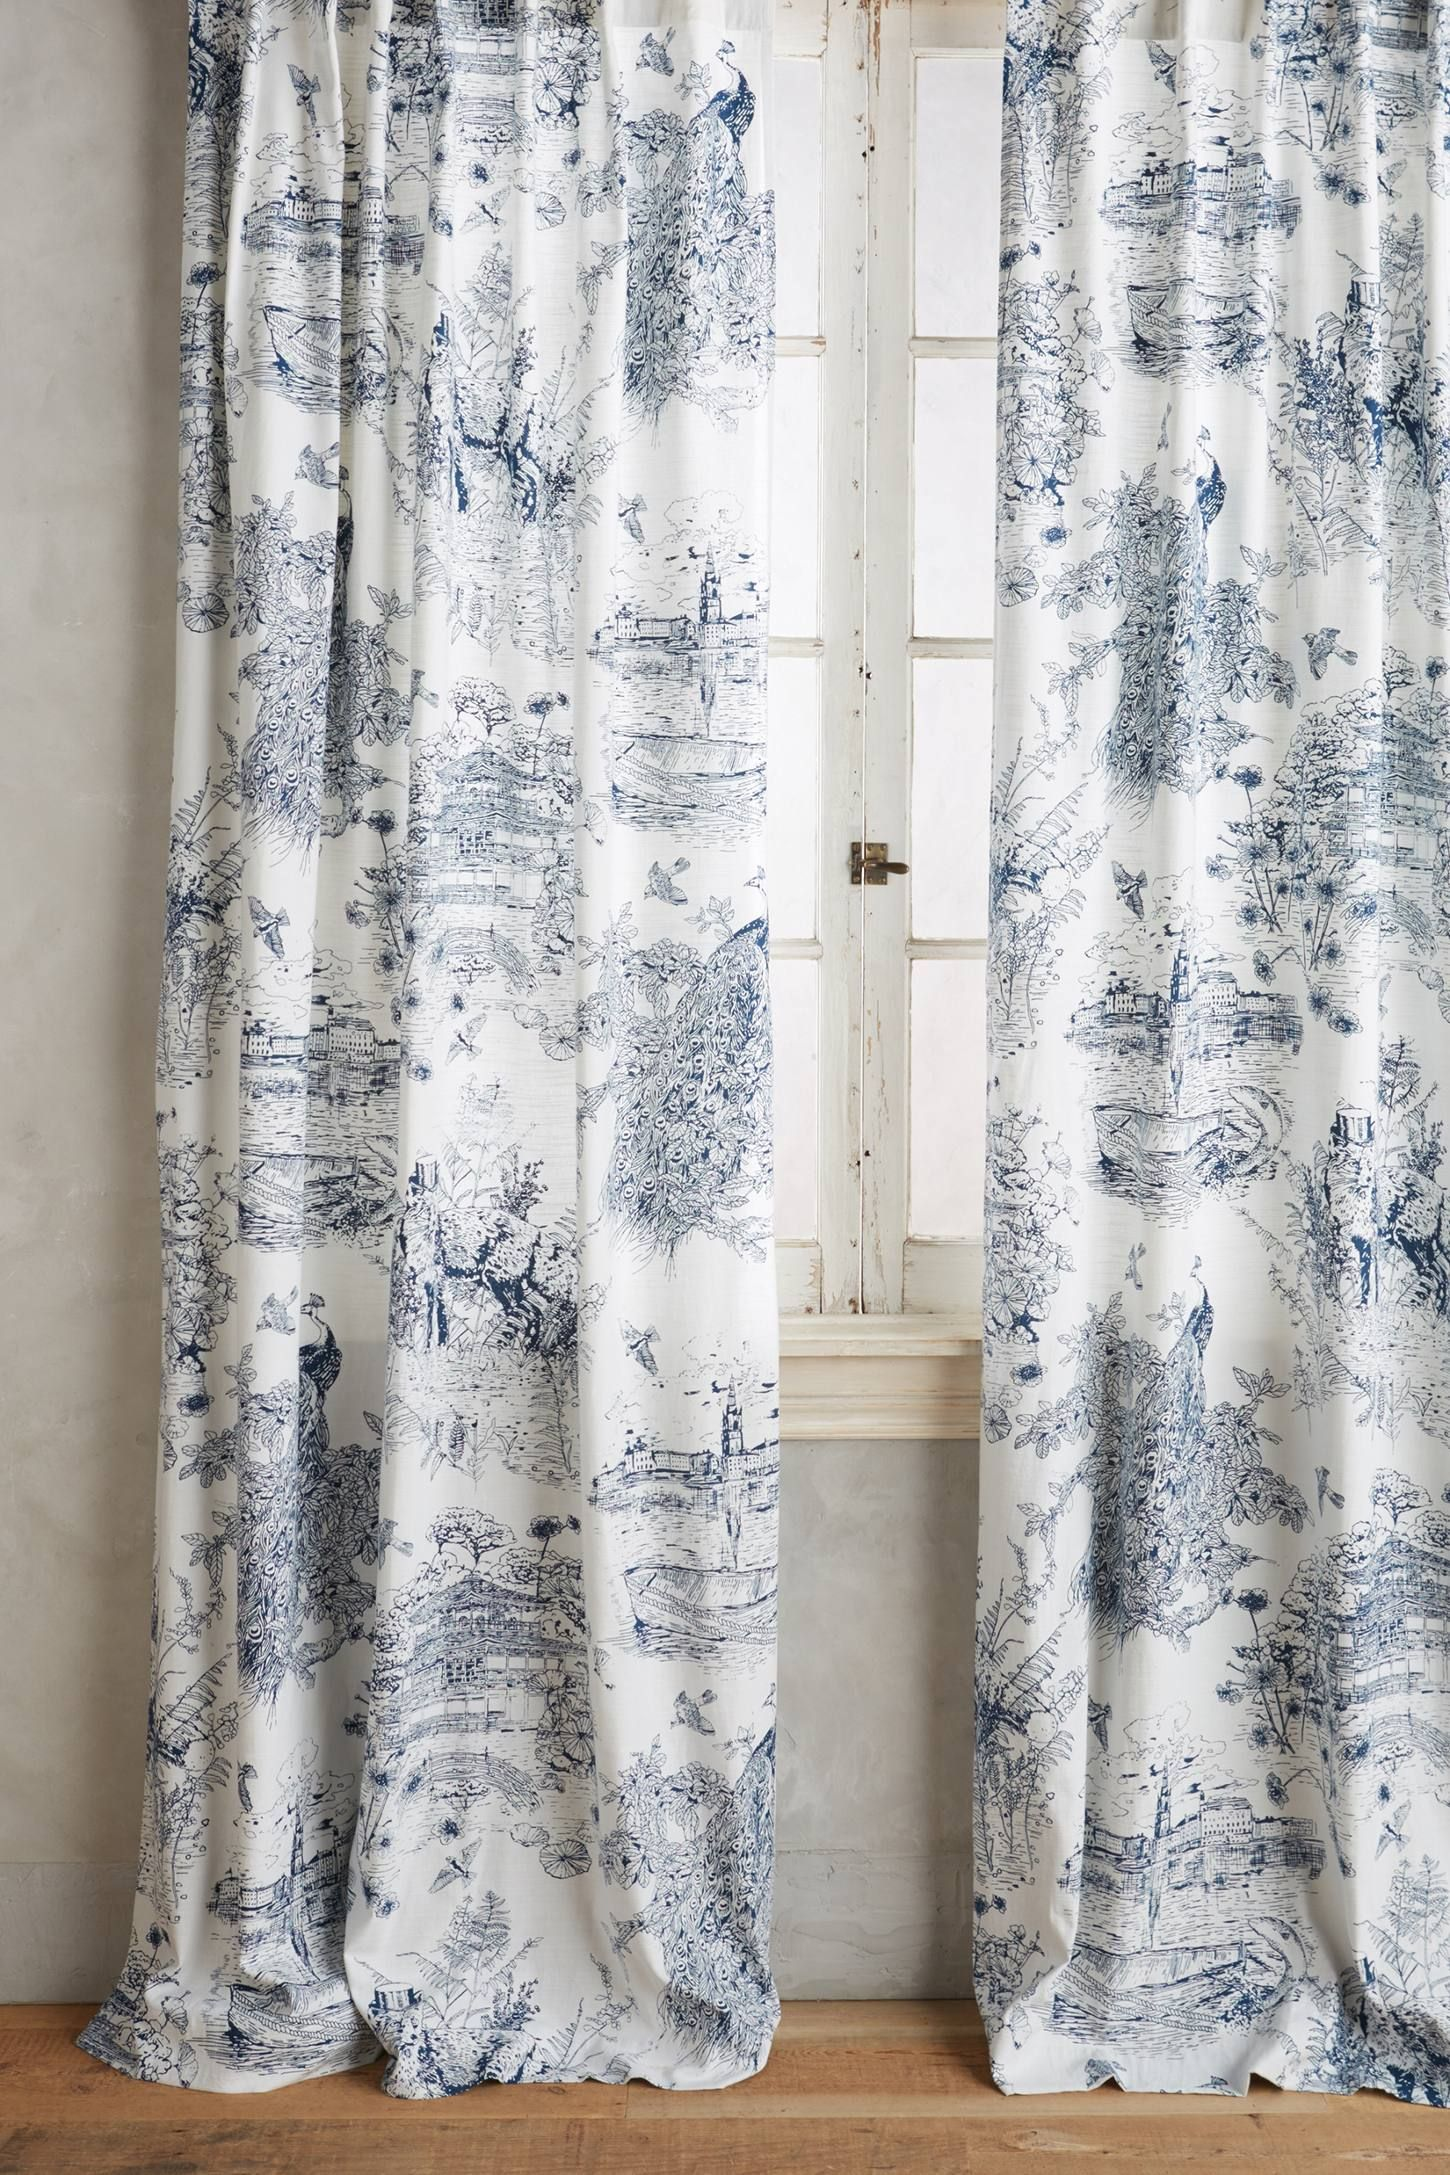 Smithery Curtain Rod | Soft furnishings, Attic and Window